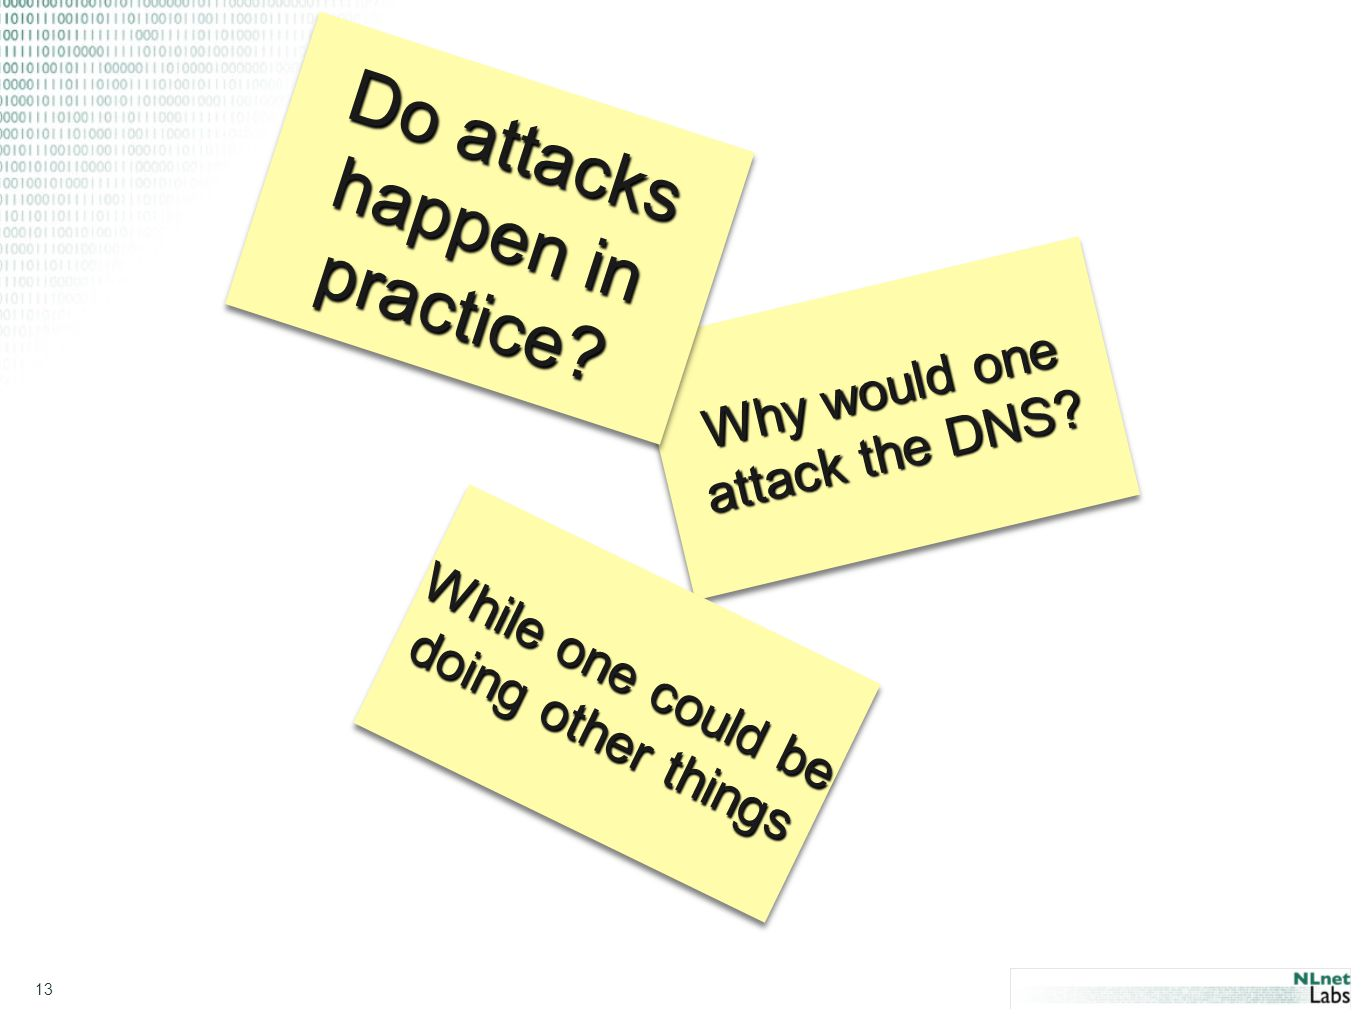 13 Why would one attack the DNS. Do attacks happen in practice.